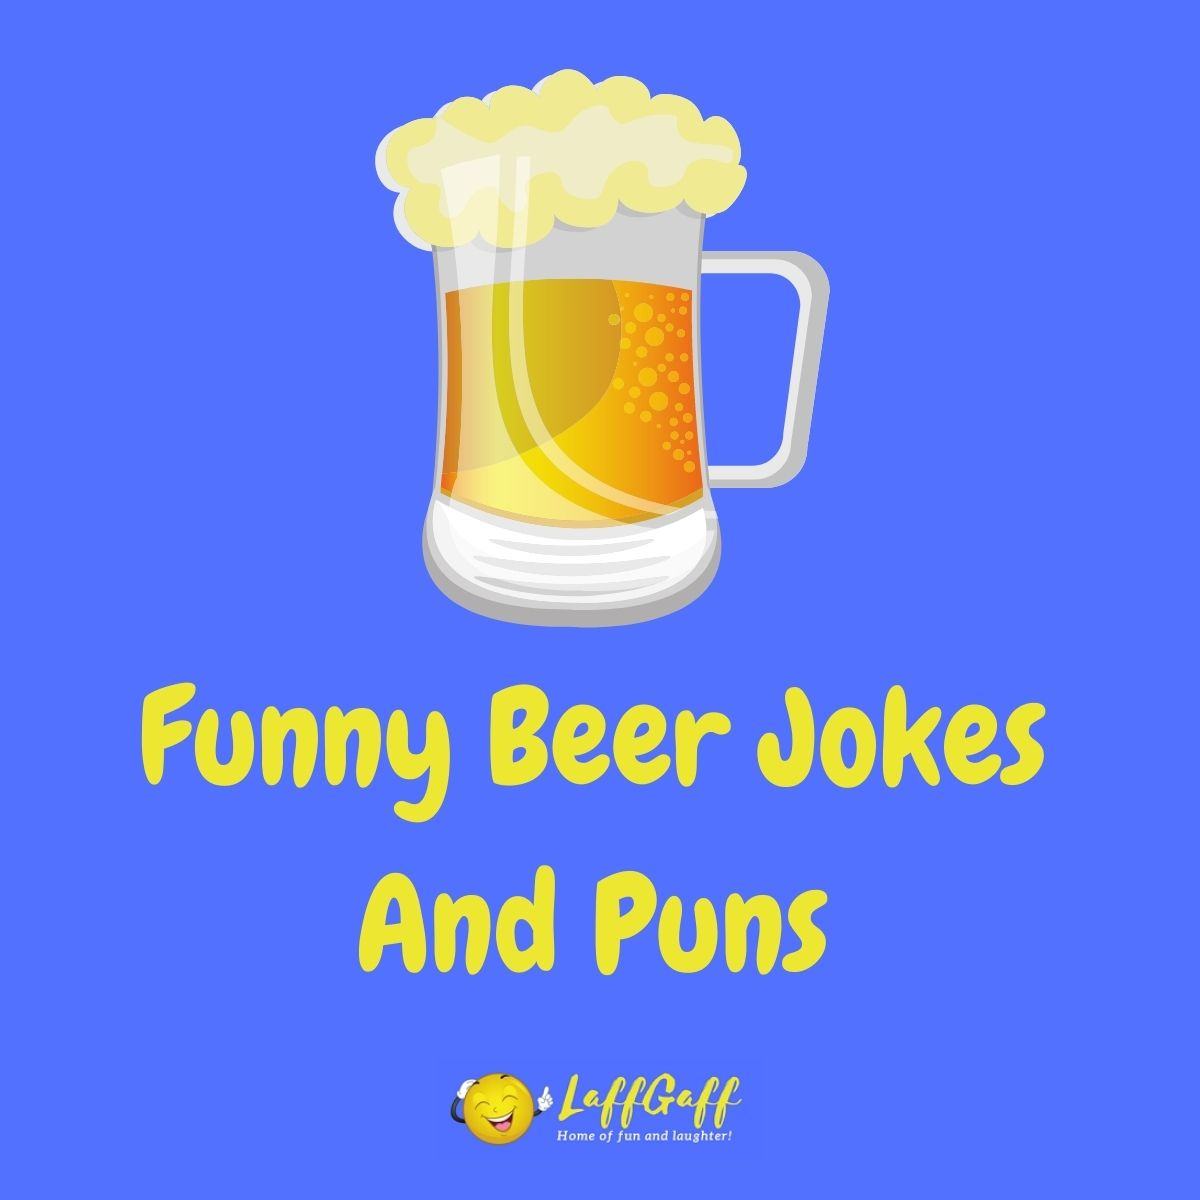 Featured image for a page of funny beer jokes and puns.